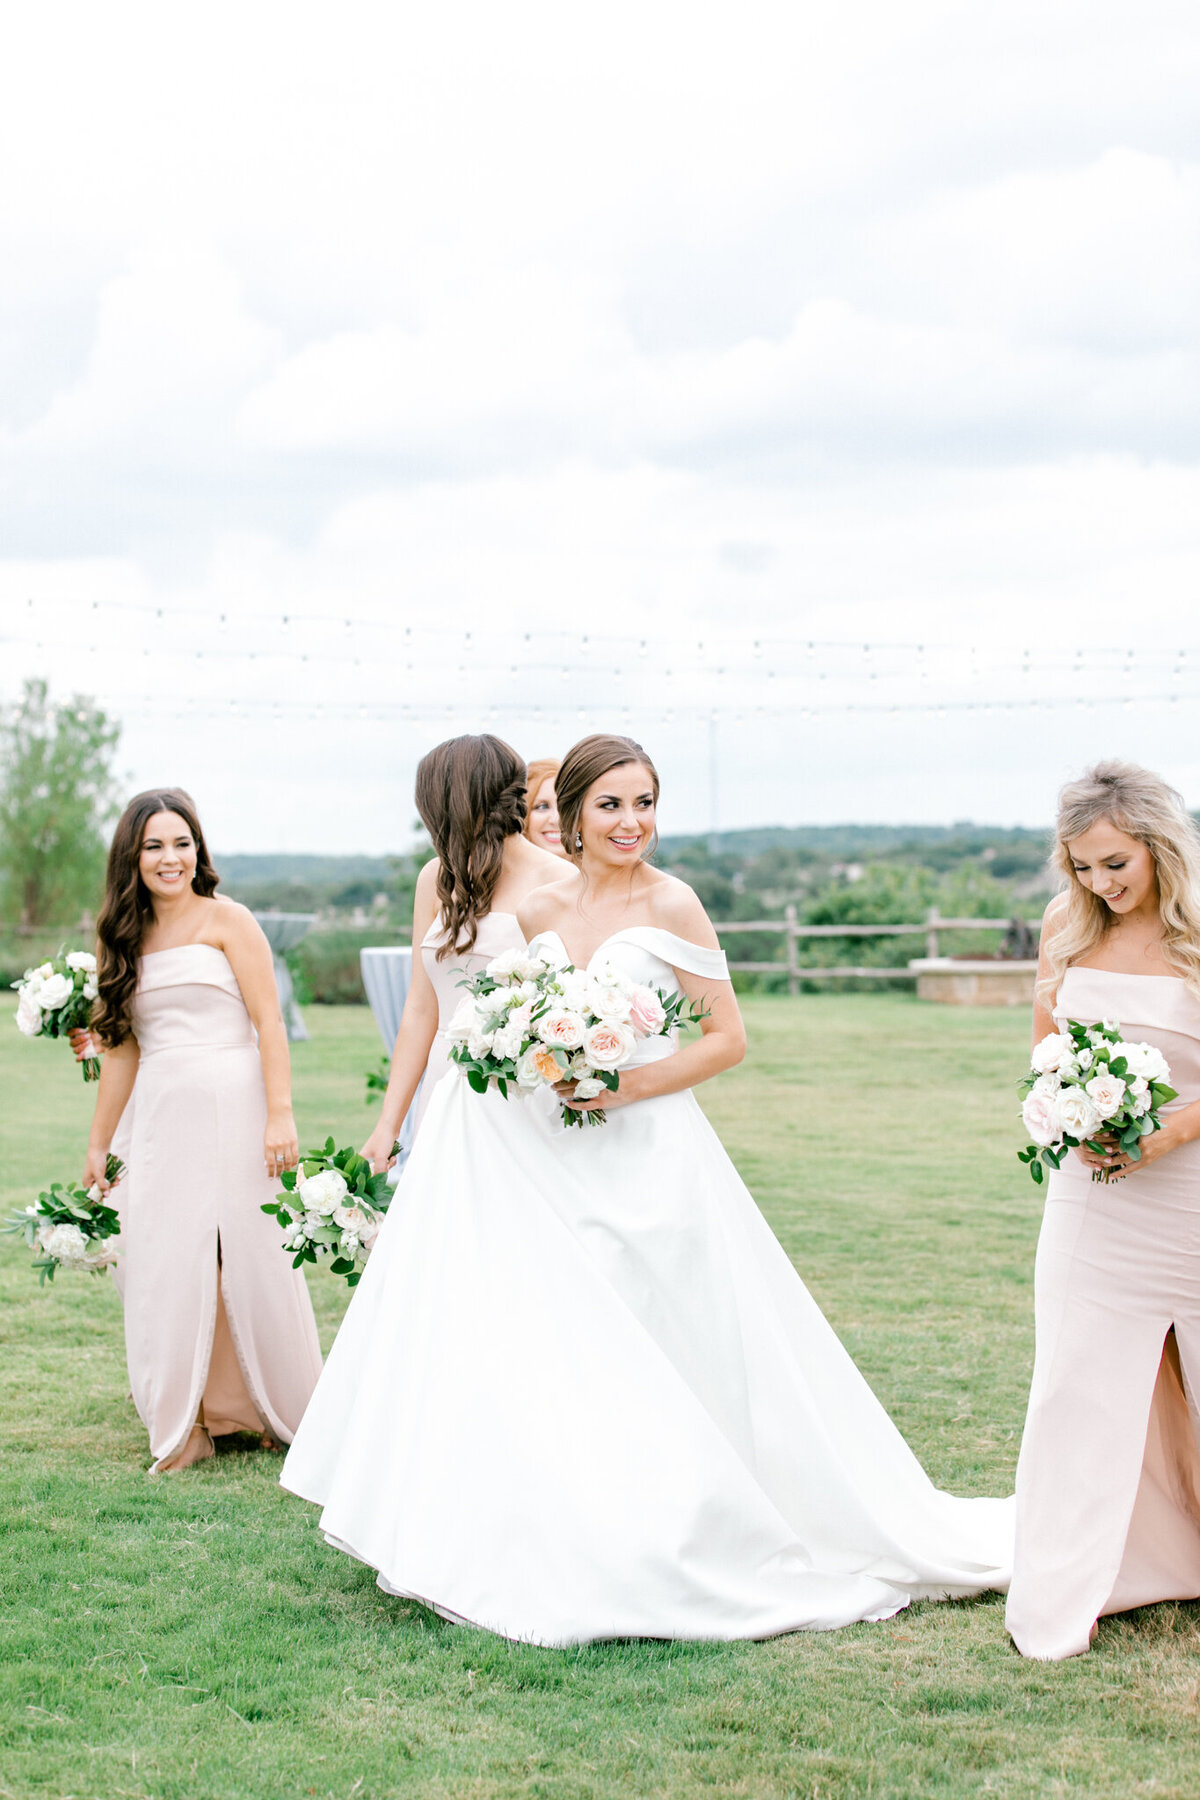 Lexi Broughton & Garrett Greer Wedding at Dove Ridge Vineyards | Sami Kathryn Photography | Dallas Wedding Photography-92